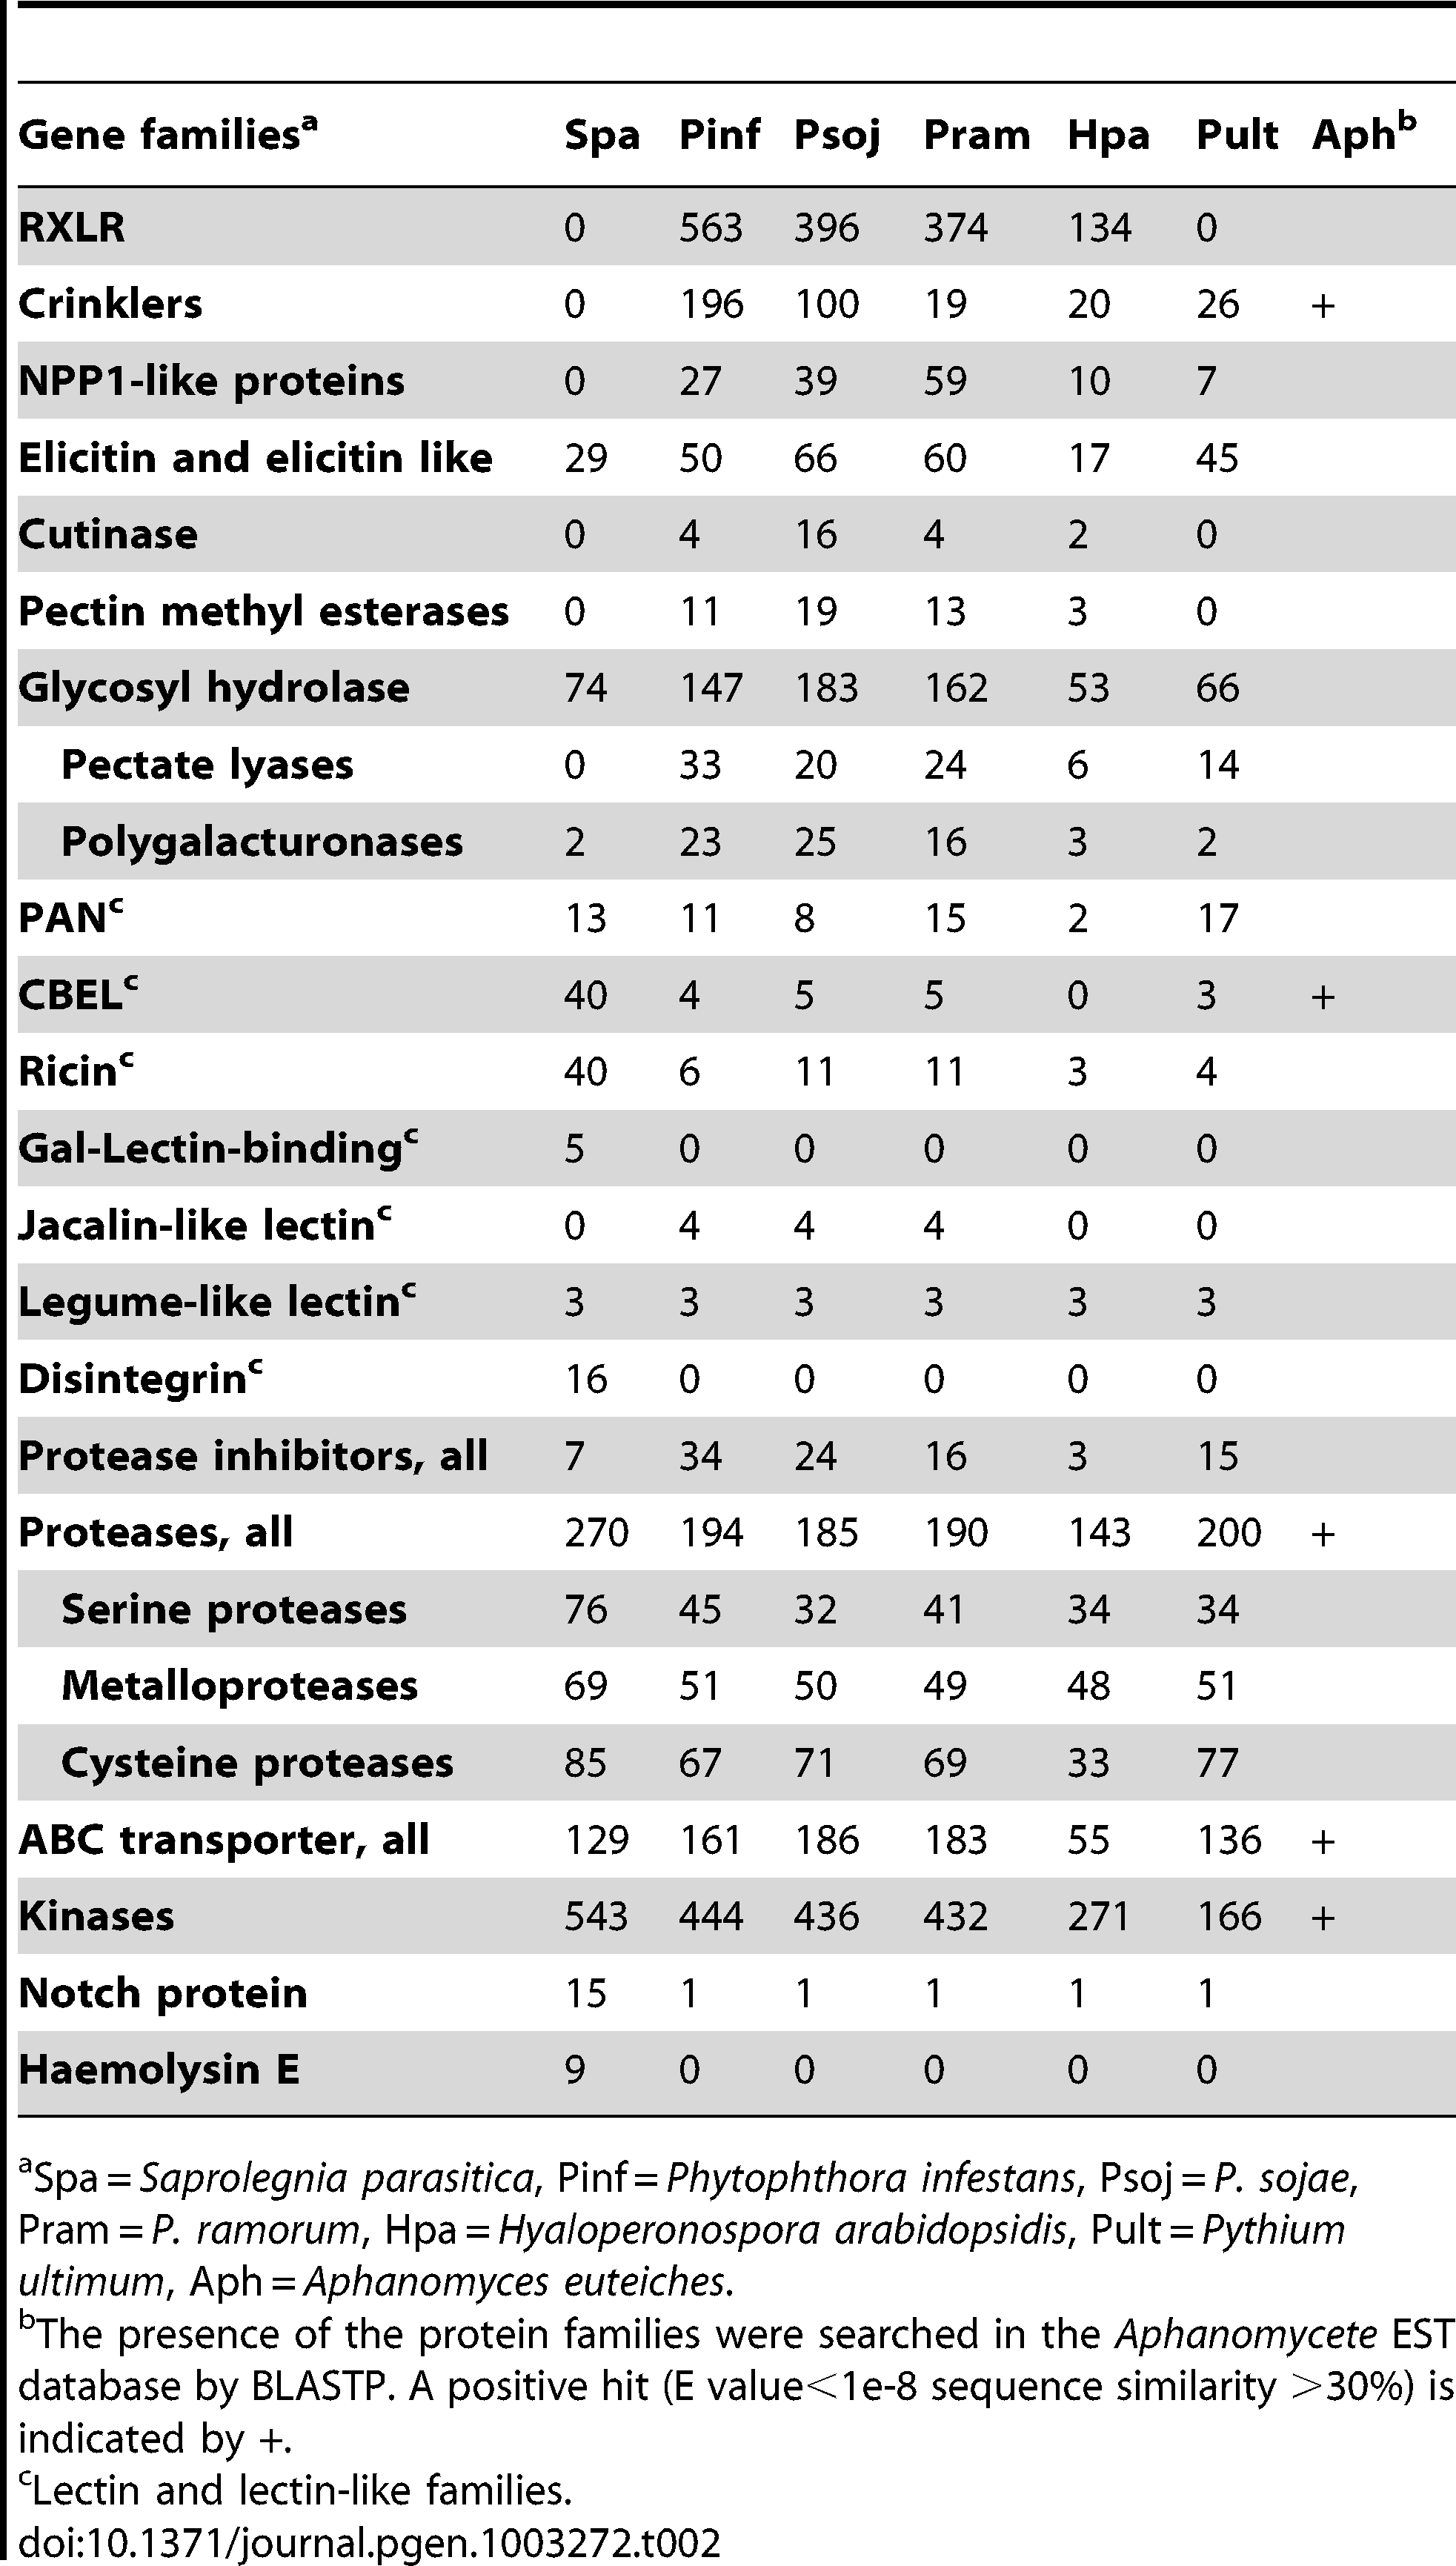 Gene families potentially involved in pathogenesis in <i>Saprolegnia parasitica</i>.